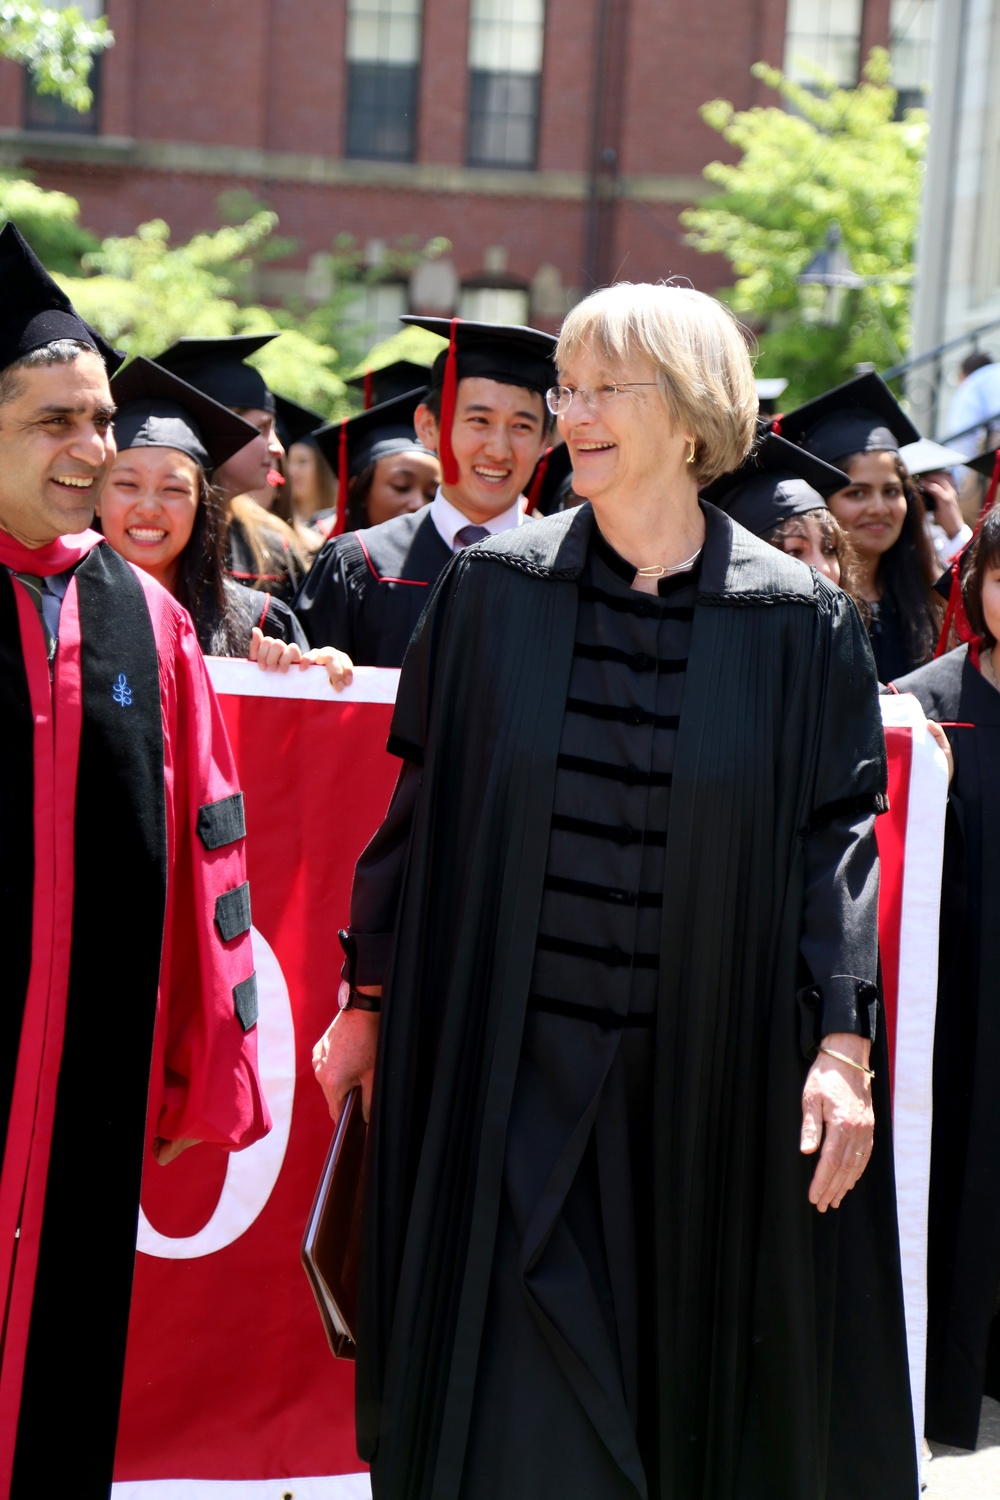 University President Drew G. Faust leads the Class of 2015 in a procession toward Memorial Church for the 2015 Baccalaureate Service on May 26. Dean of the College Rakesh Khurana smiles at left and the 2015 class marshals follow behind.